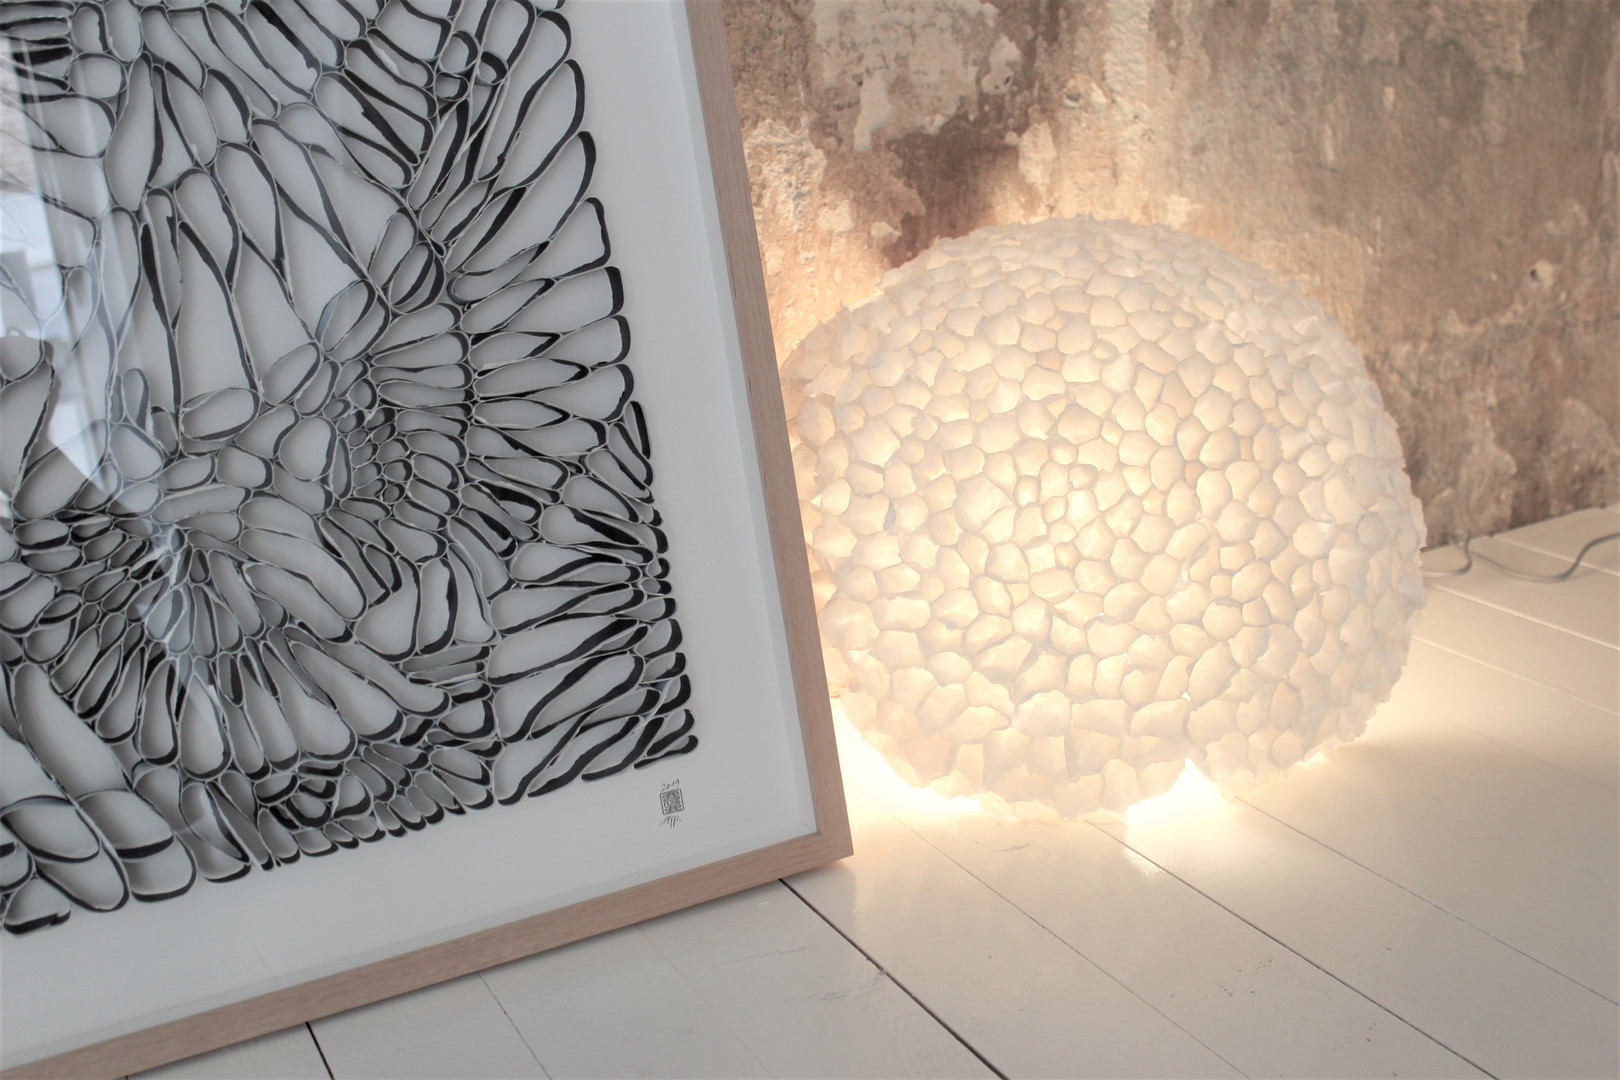 """Murmuration"" and light sculpture"